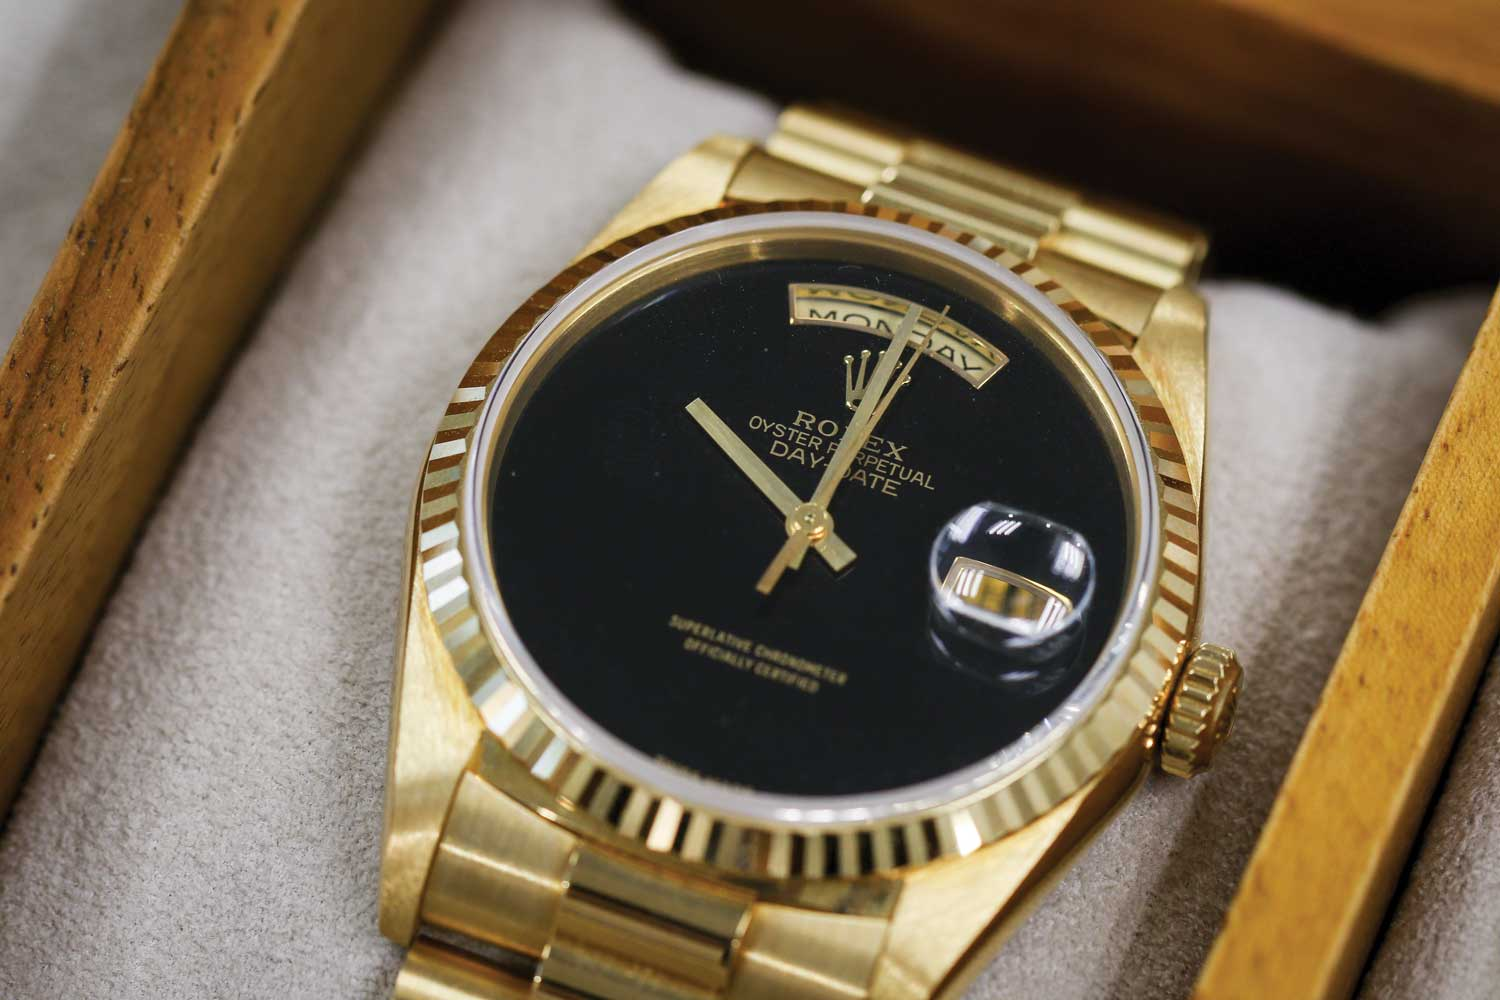 Rolex Day-Date ref. 18038 Onyx dial (Image © Revolution)